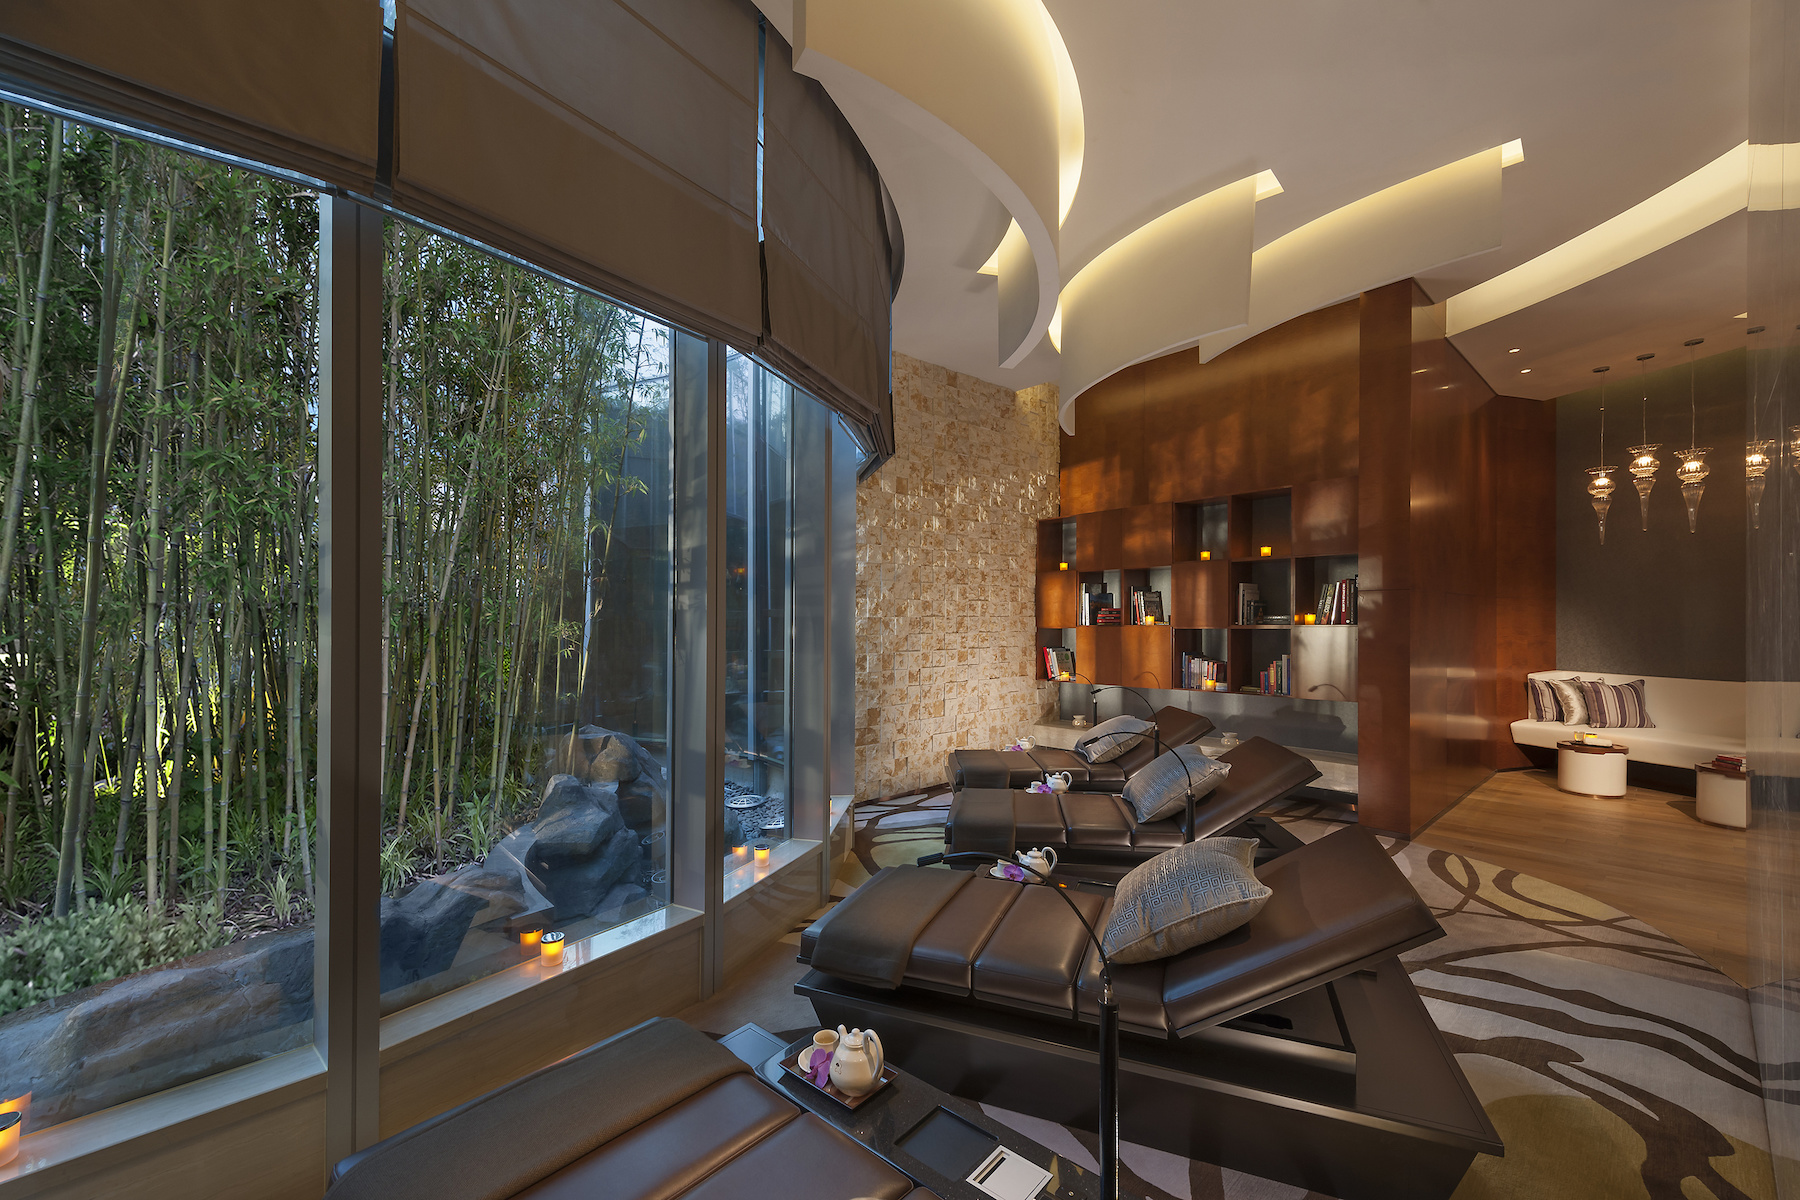 shanghai-luxury-spa-relaxation-room.jpg